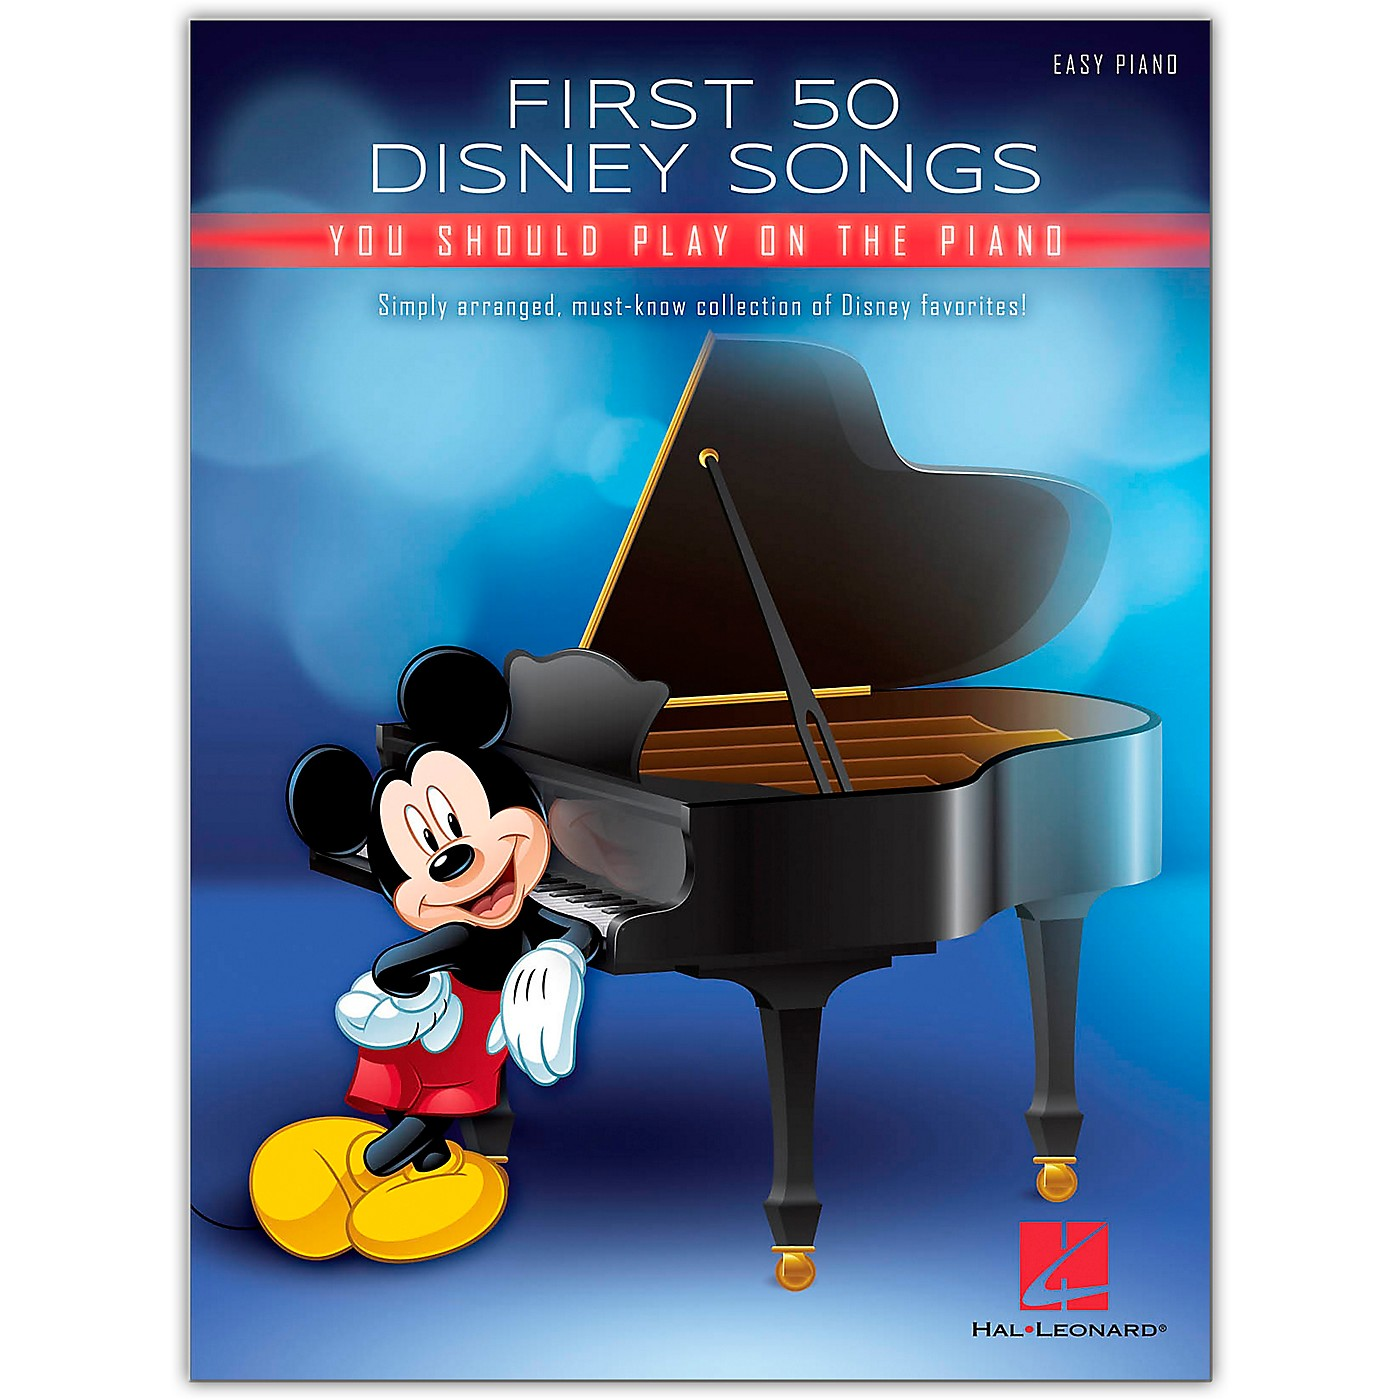 Hal Leonard First 50 Disney Songs You Should Play on the Piano Easy Piano Songbook thumbnail